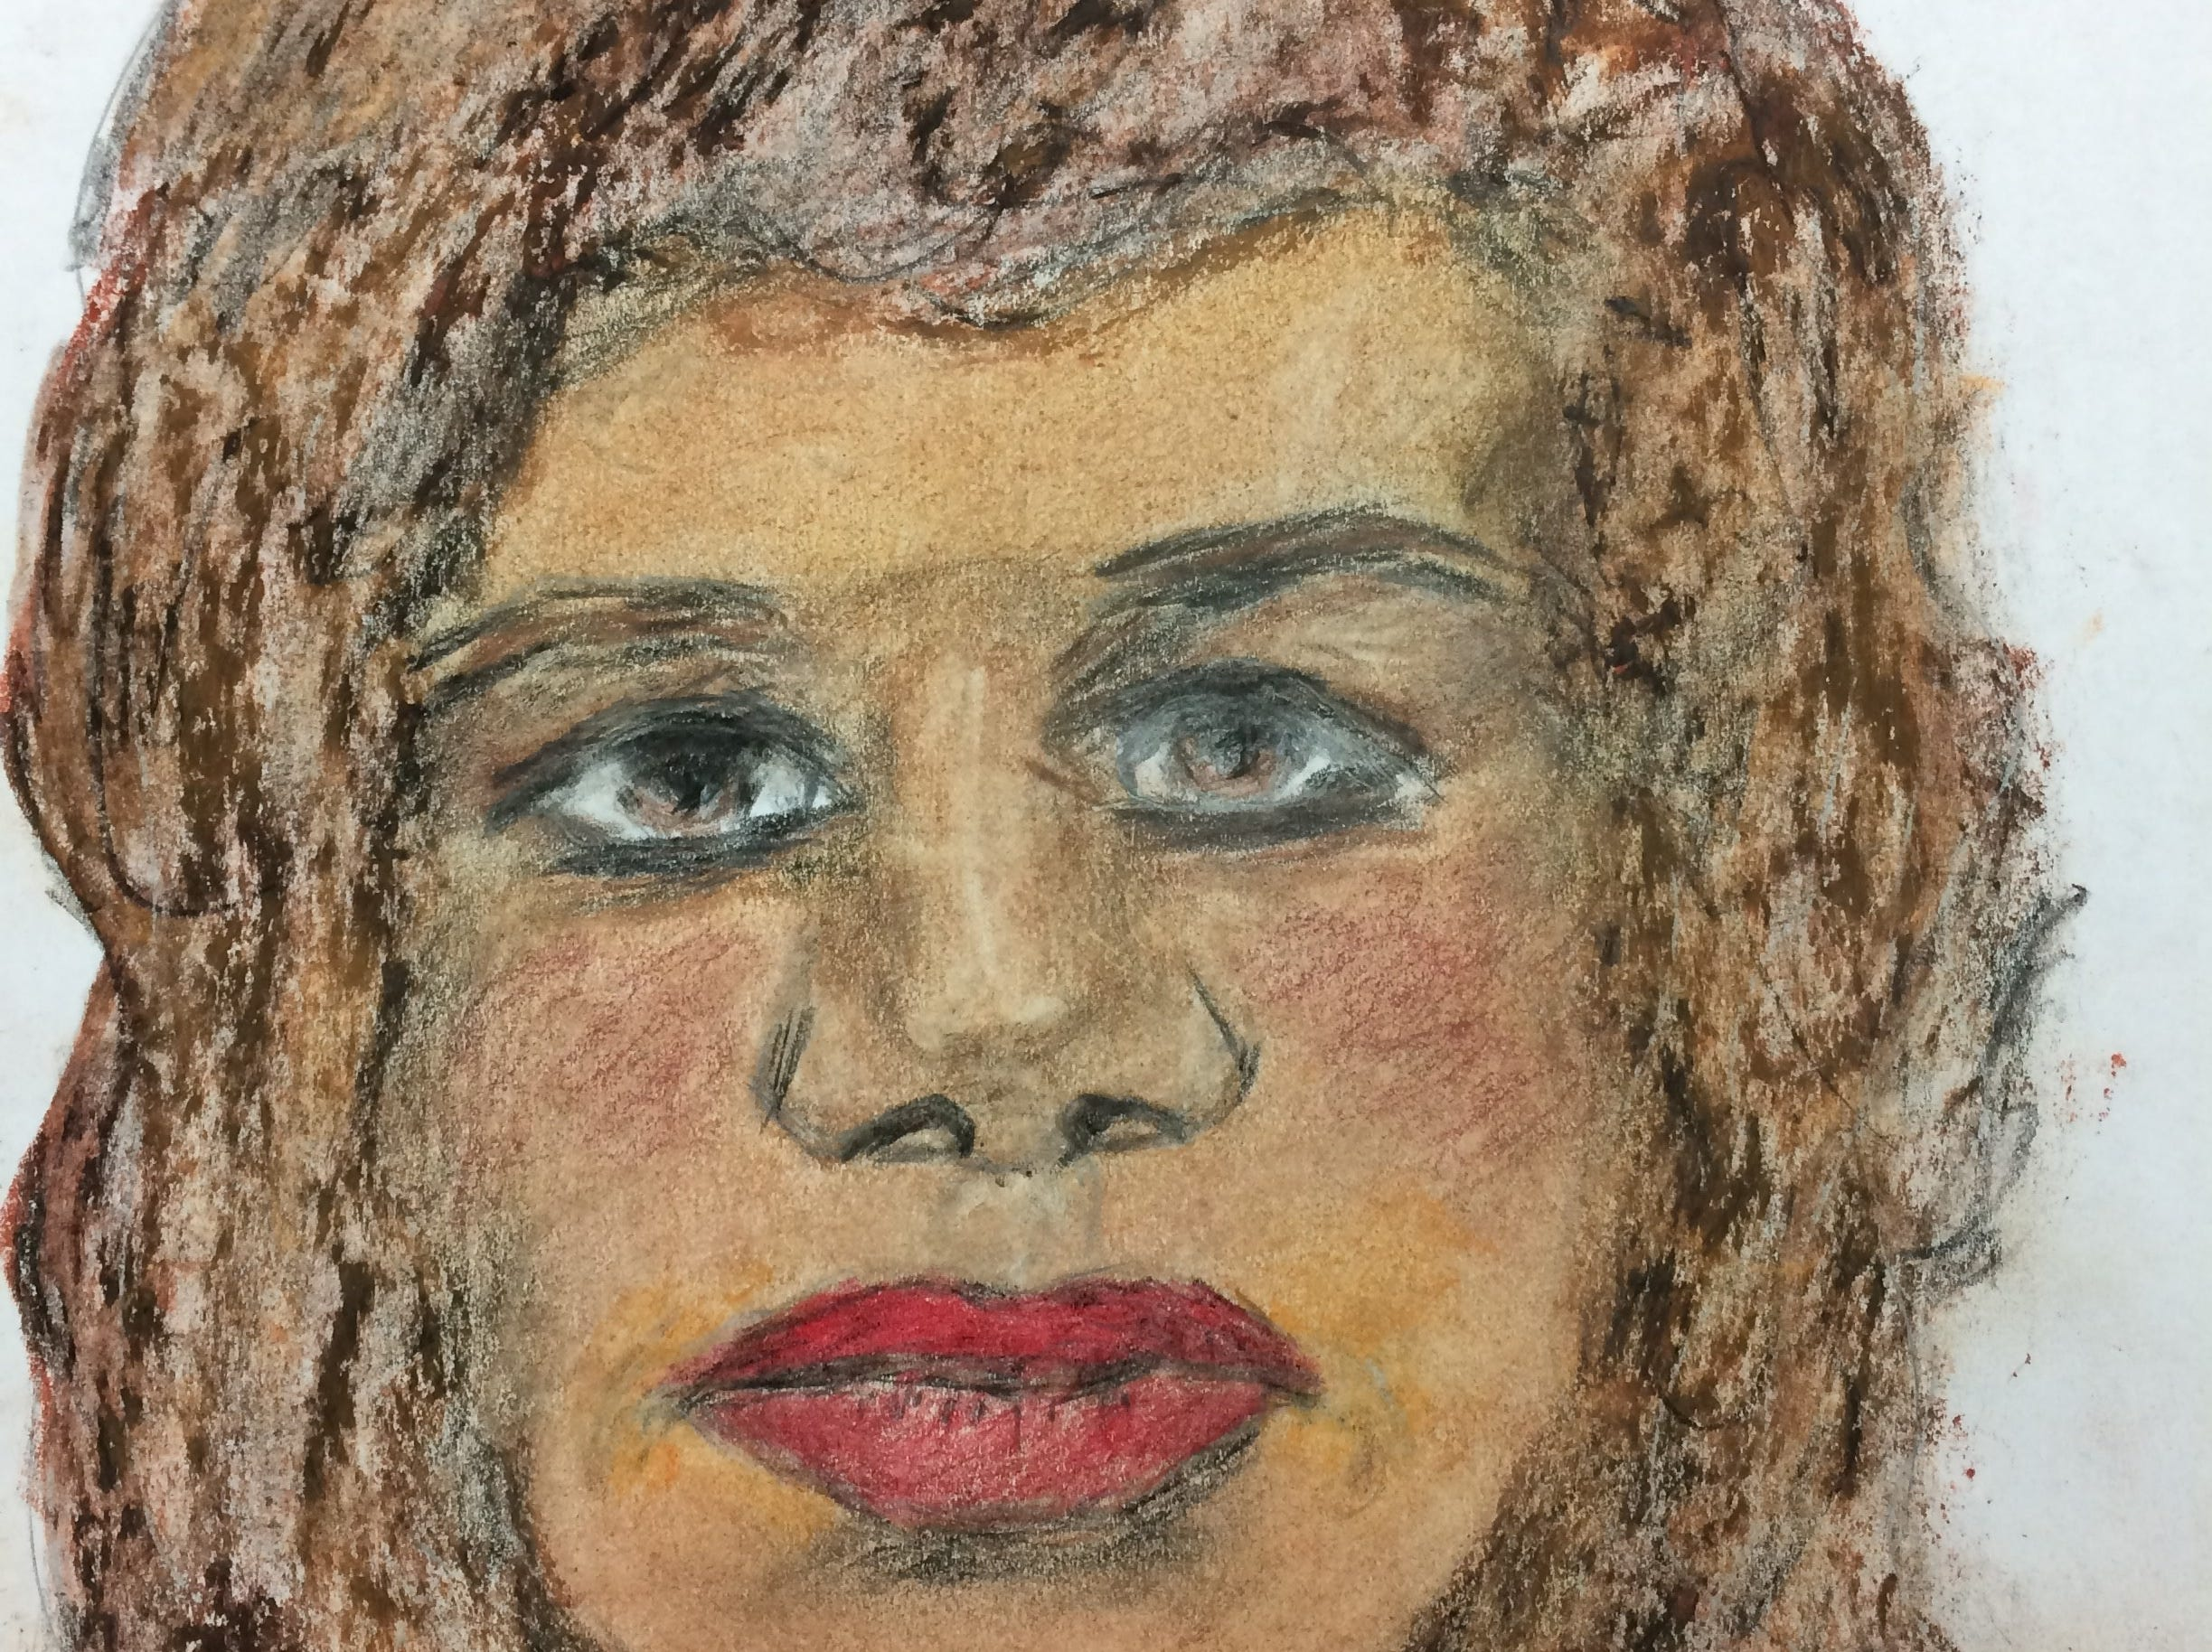 Serial killer Samuel Little drew this woman who he says he murdered in 1977. Little told authorities she was between 35 and 45 years old. He says they met in Gulfport, Miss. and she was possibly from Pascagoula and worked at the Ingalls Shipyard.